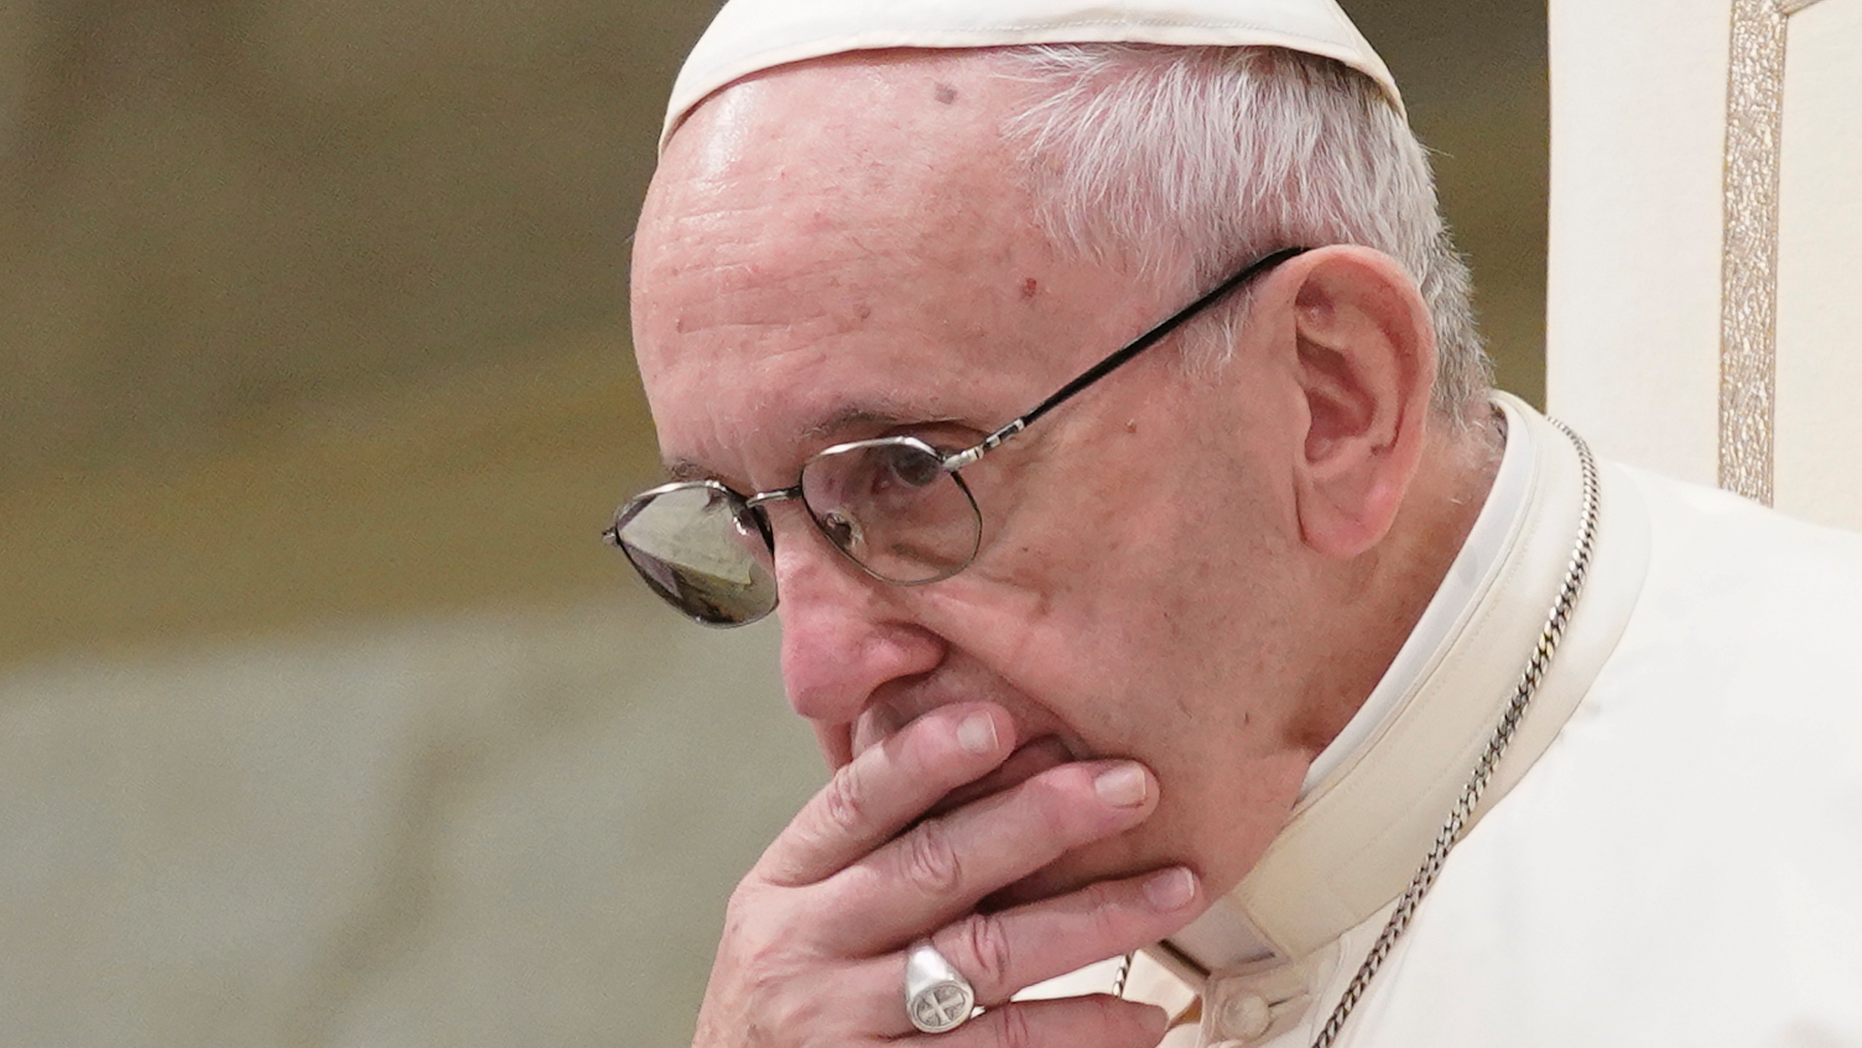 FILE - In this Aug. 22, 2018 file photo, Pope Francis is caught in pensive mood during his weekly general audience at the Vatican. Francis' papacy has been thrown into crisis by accusations that he covered-up sexual misconduct by ex-Cardinal Theodore McCarrick. (AP Photo/Andrew Medichini, File)